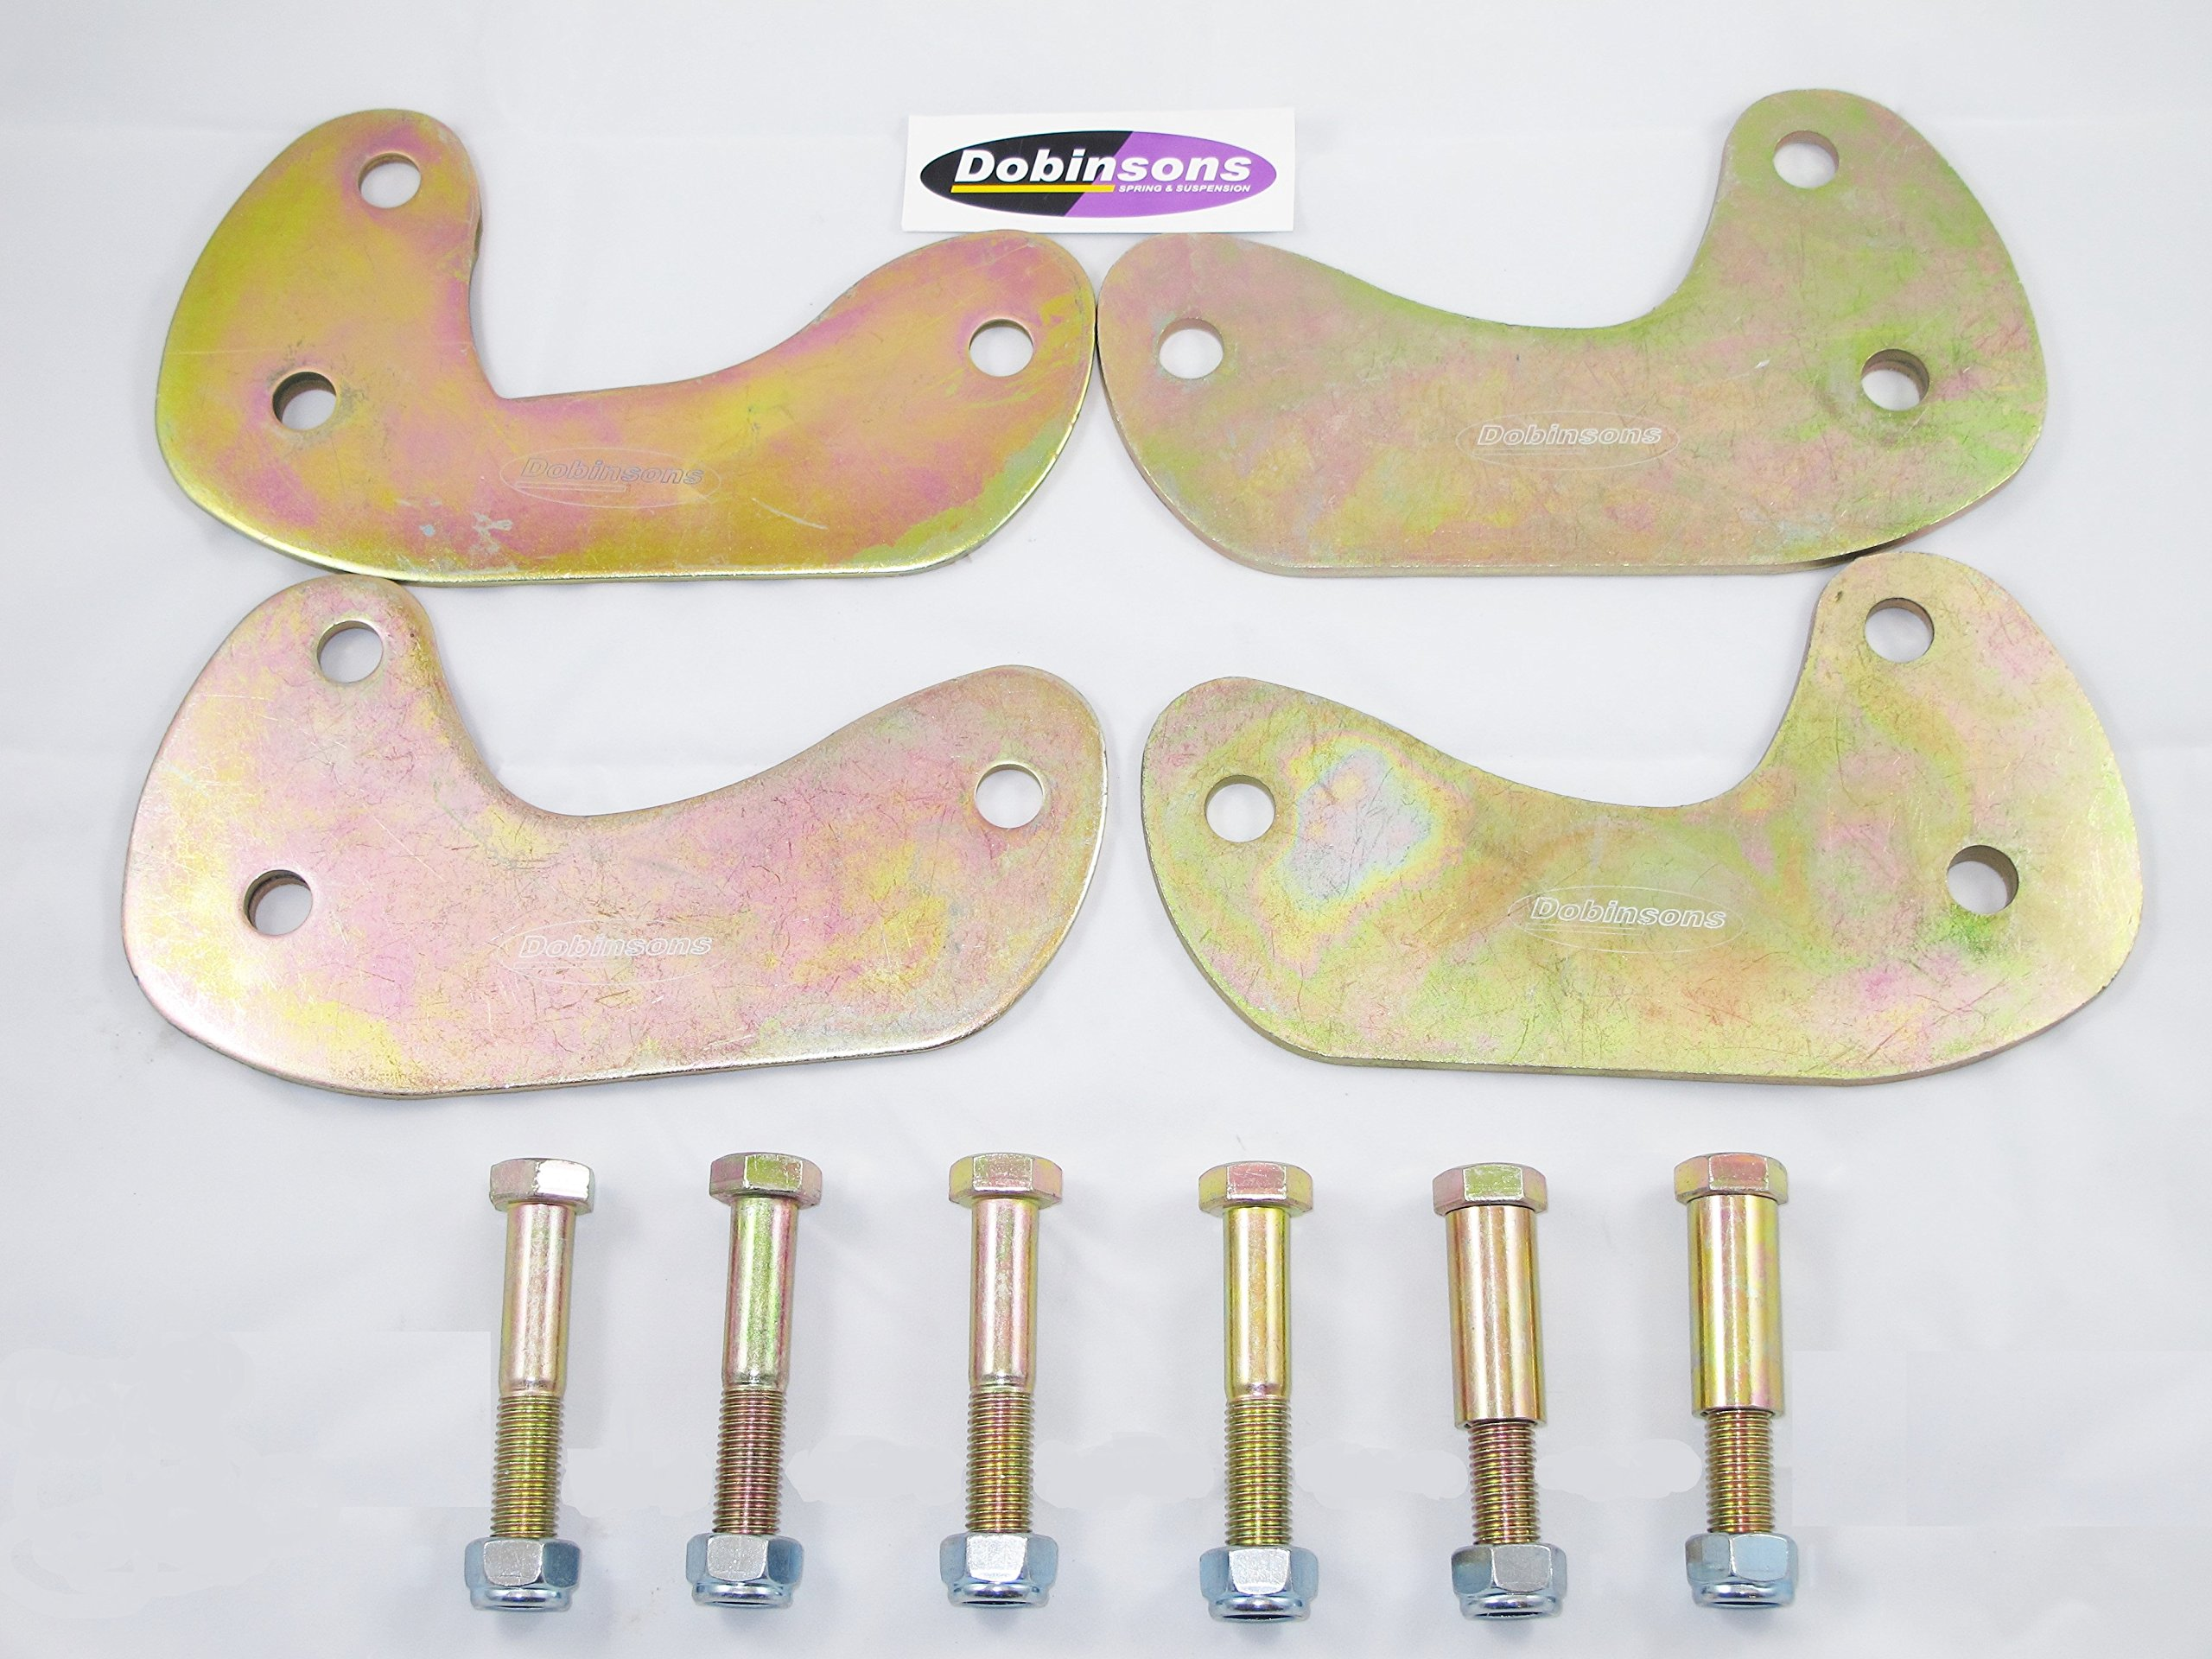 Dobinsons 5° Caster Plate Kit for Toyota Land Cruiser 80 and 105 Series